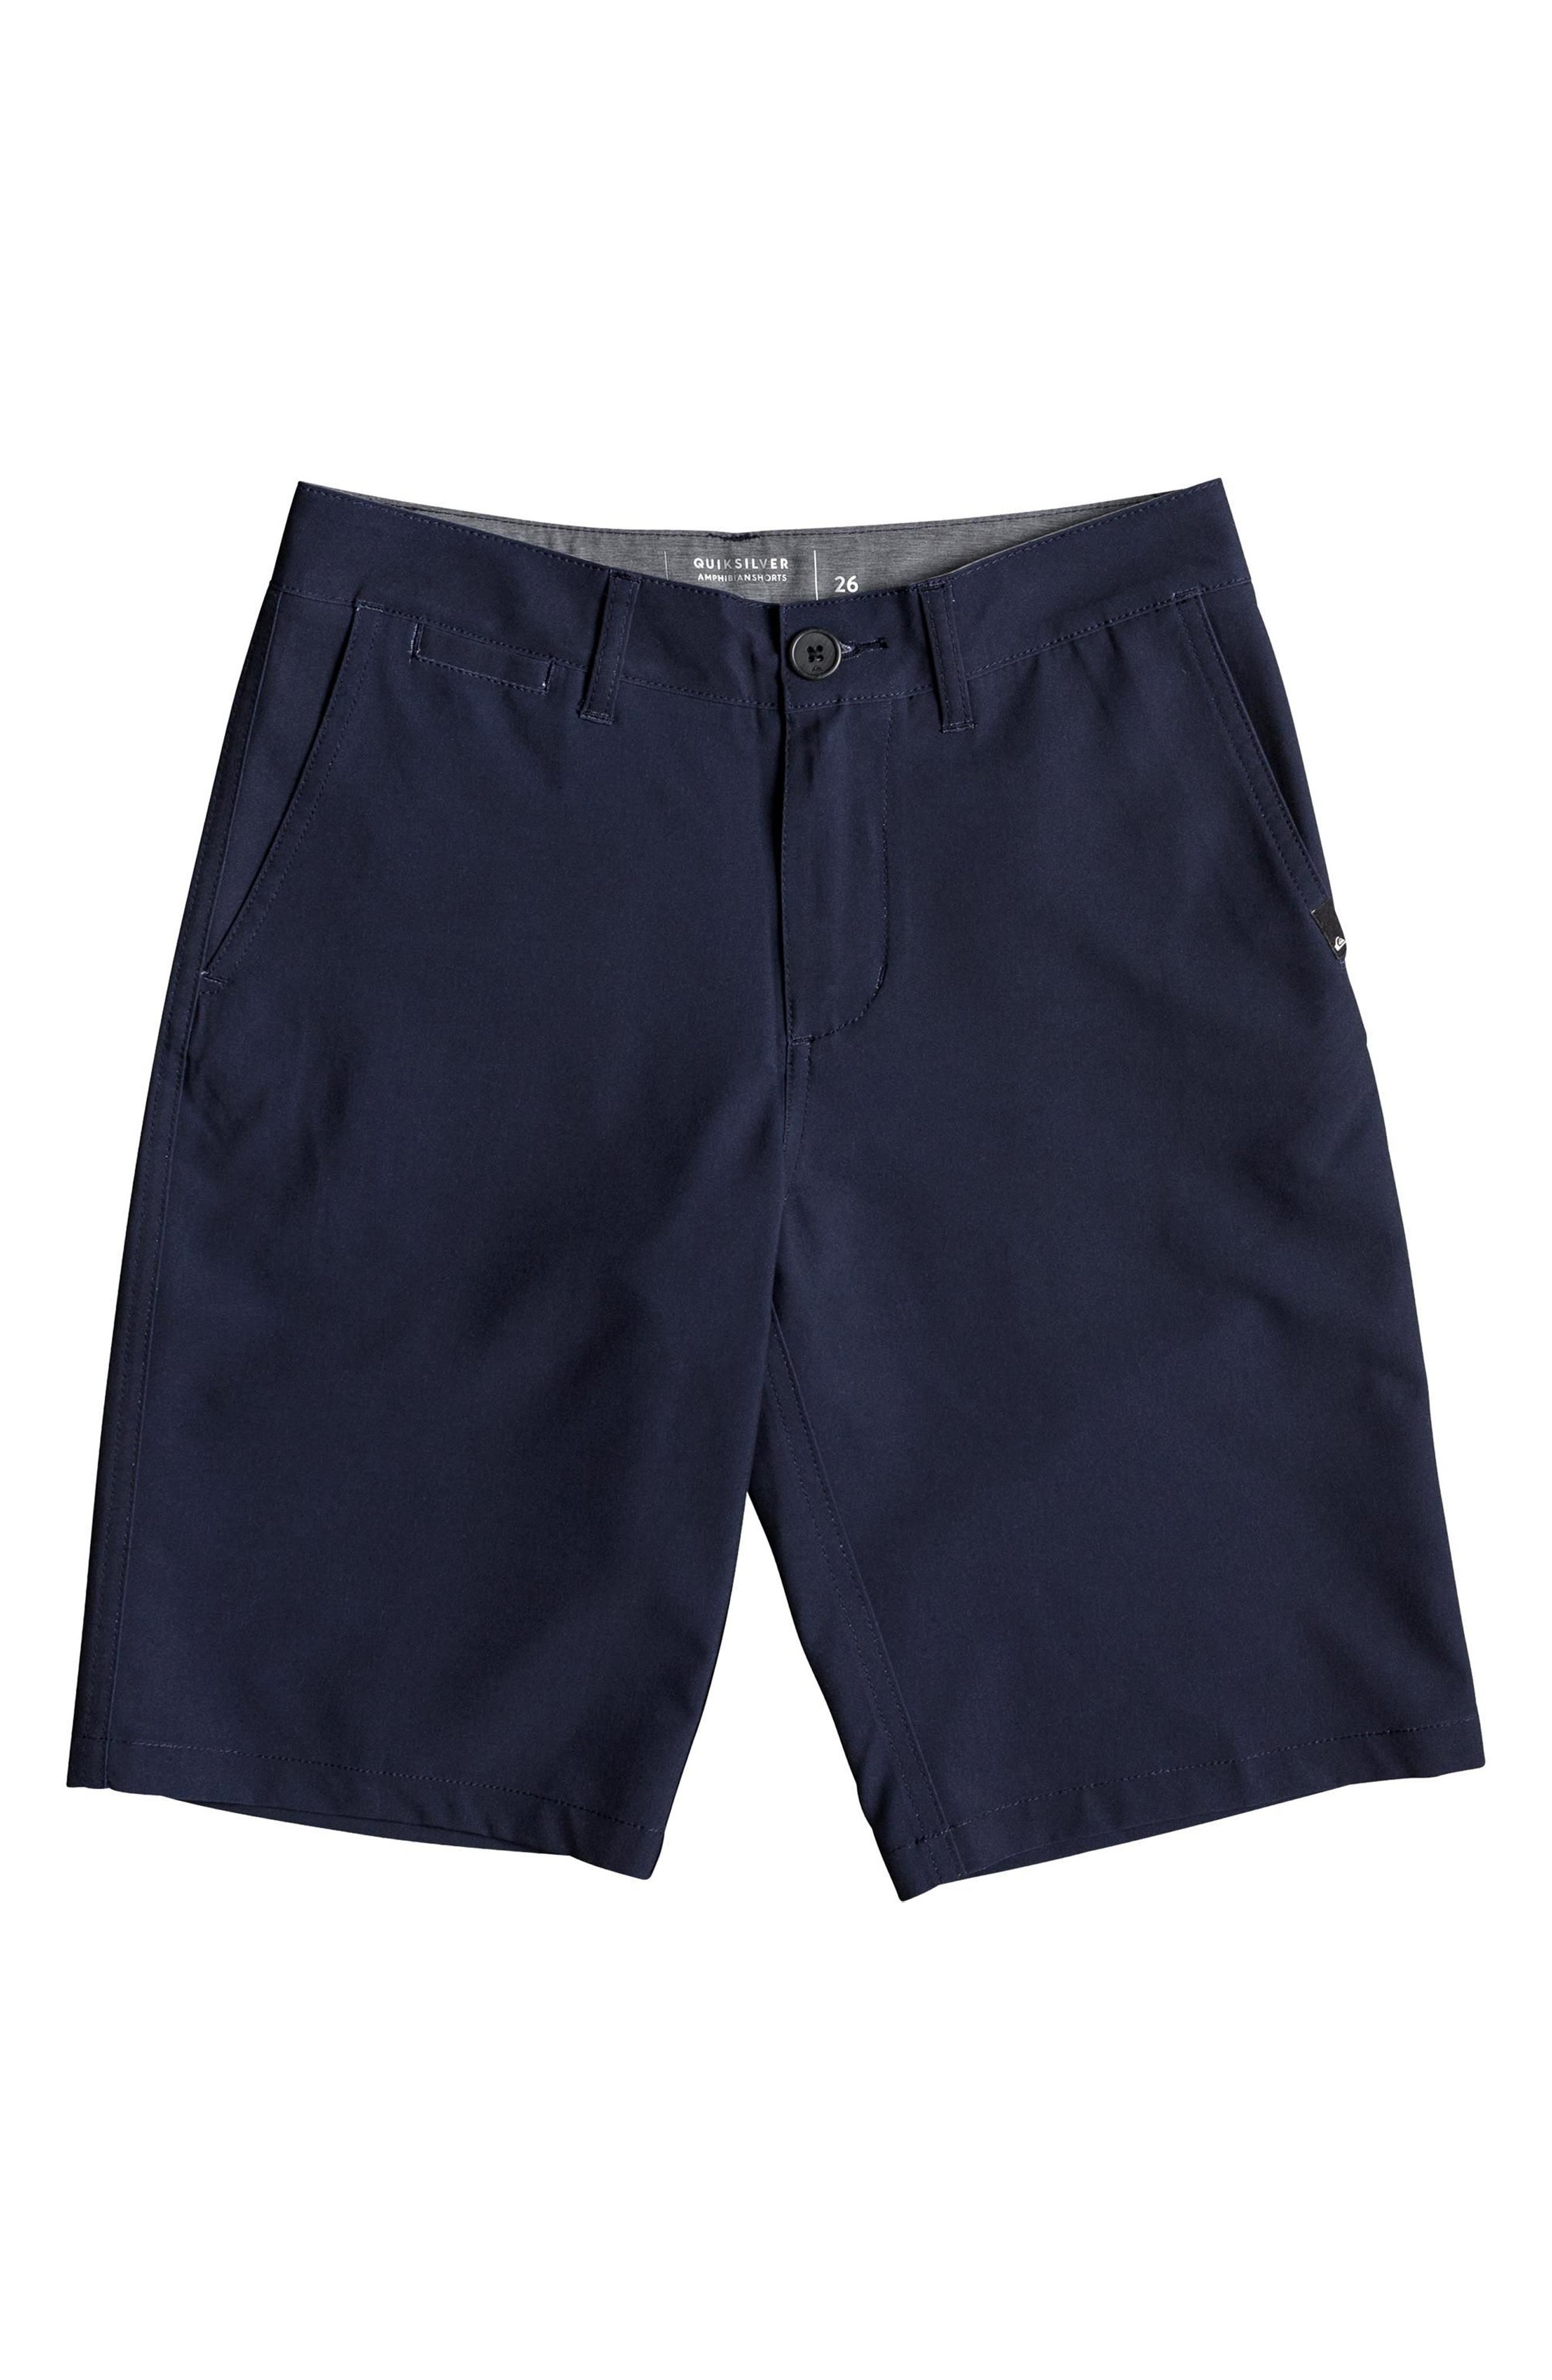 QUIKSILVER Union Amphibian Hybrid Shorts, Main, color, NAVY BLAZER